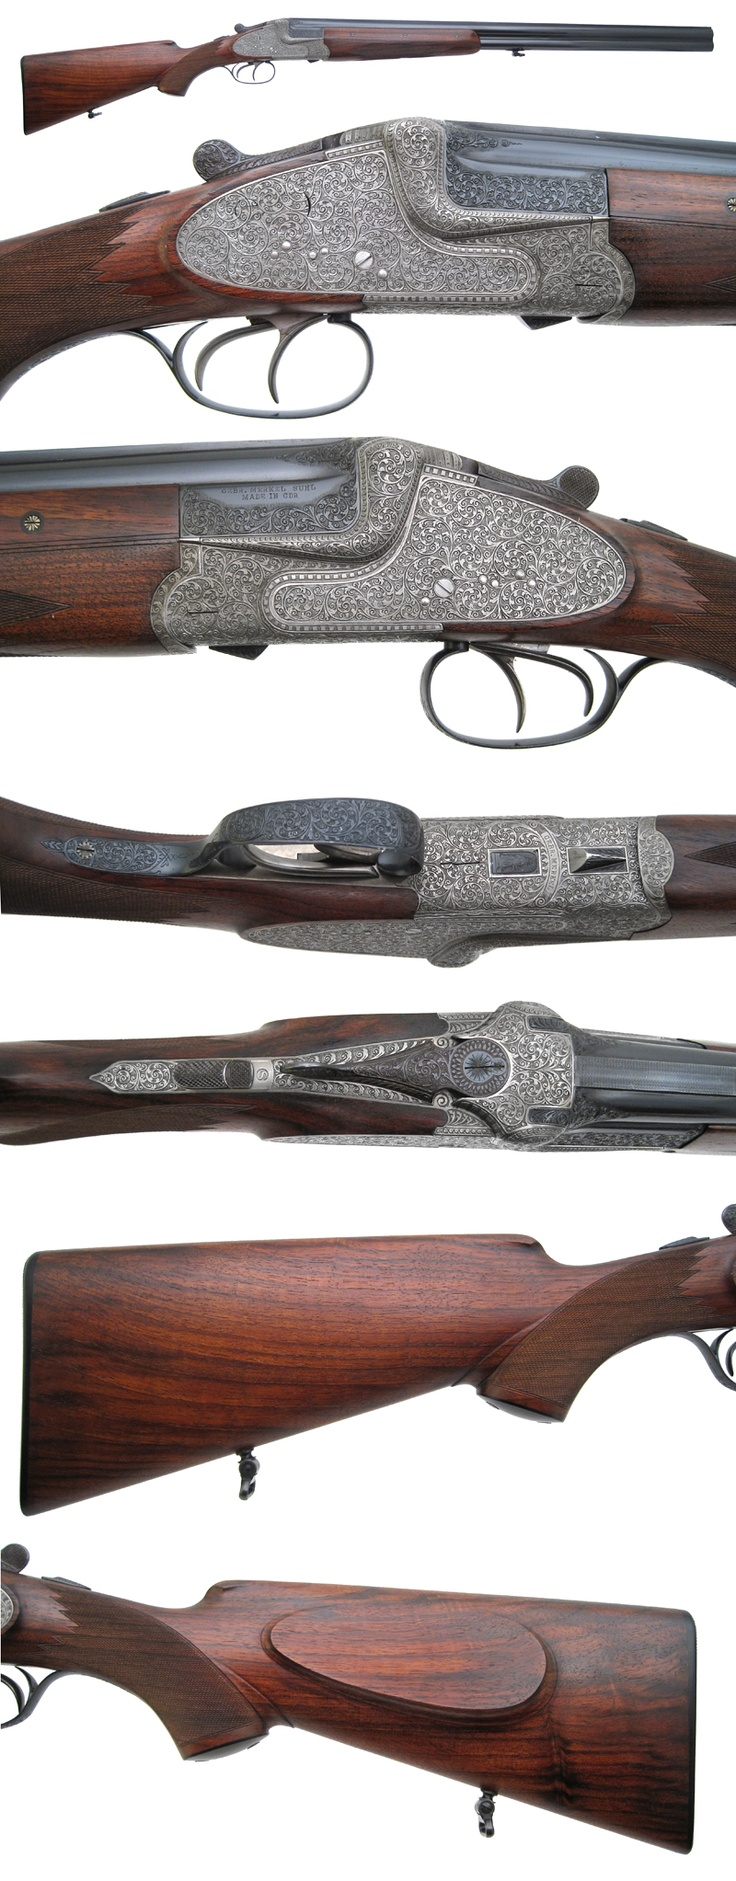 Griffin & Howe - Gun Details Page  The venerable Merkel 303...very fine specimen!